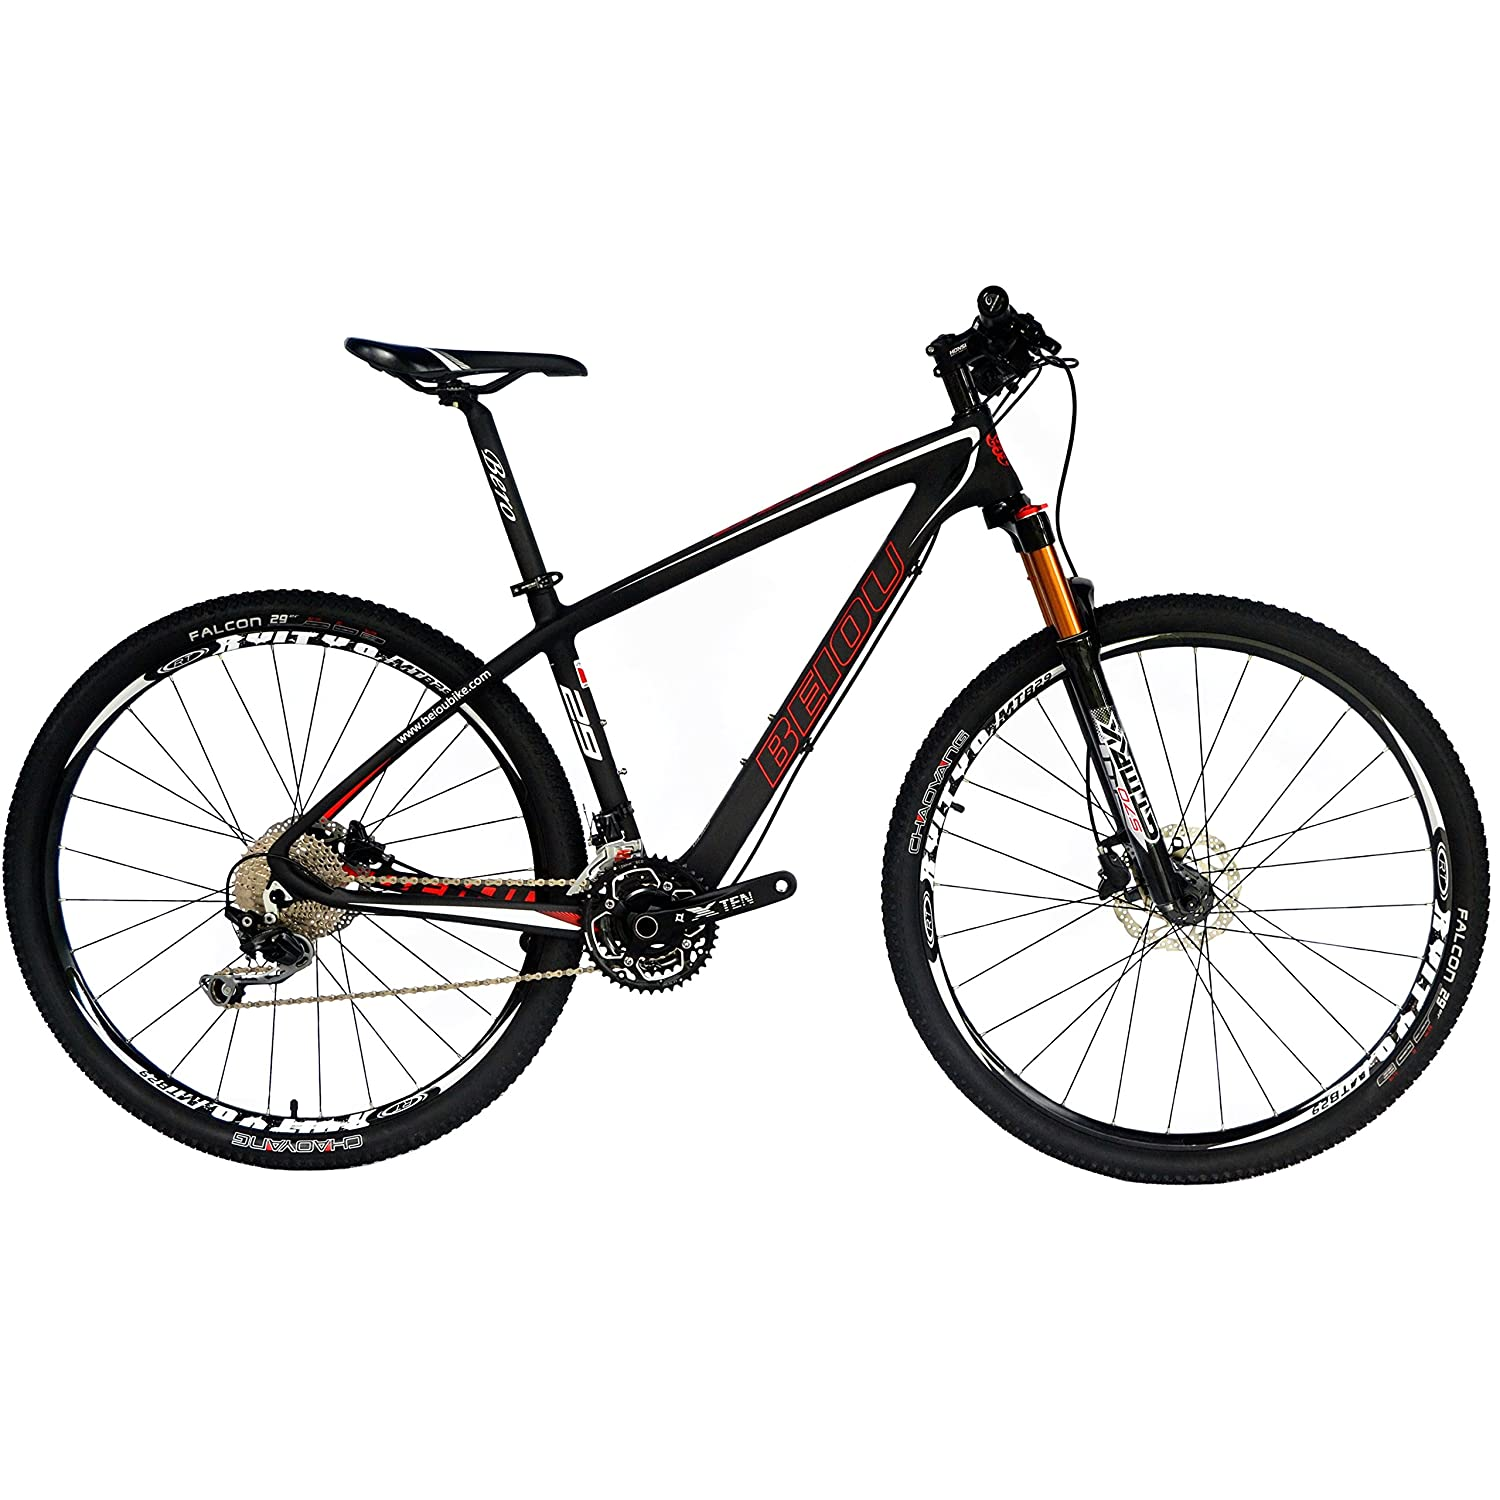 Carbon Fiber Mountain Bike >> Beiou Carbon Fiber 27 5 Mountain Bike 10 7kg 29 Hardtail Bicycle 2 10 Tires Shimano Deore M6000 30 Speed Xc Trail Mtb 650b 29er T800 Ultralight